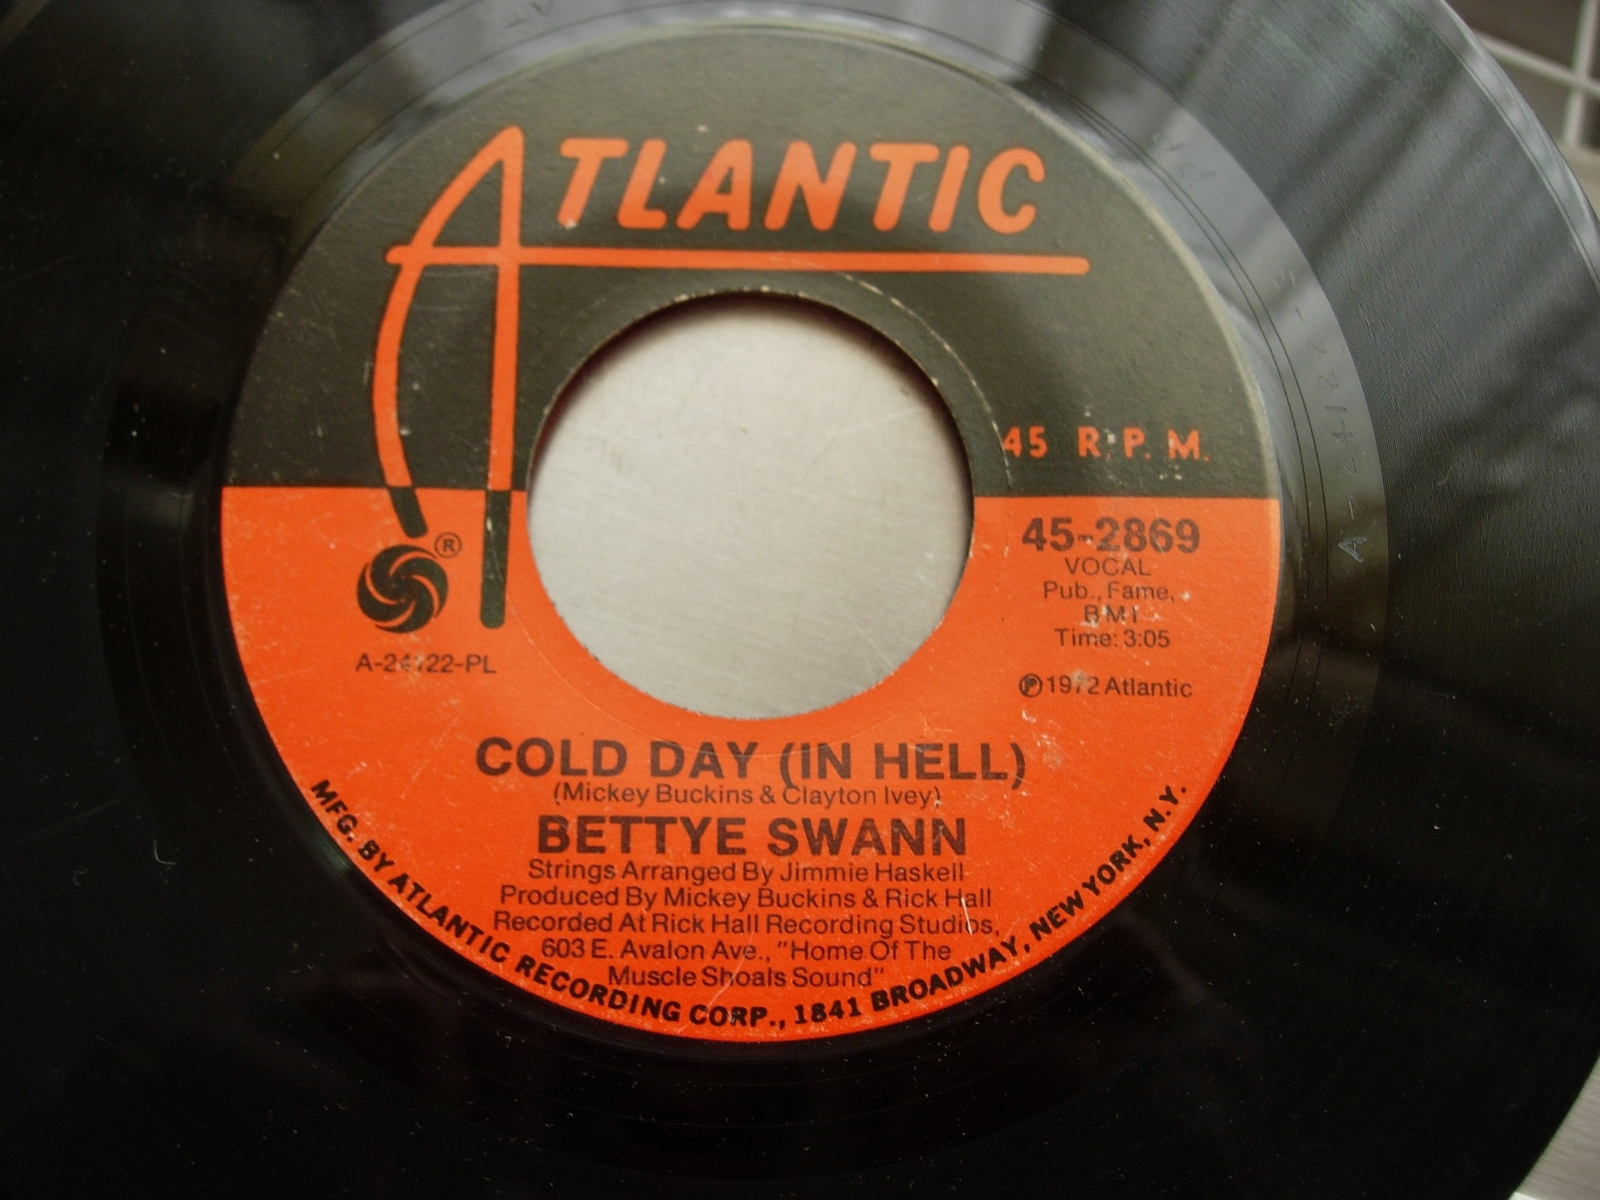 Bettye Swann - Cold Day (In Hell) / Victim of a Foolish Heart -Atlantic 45-2869